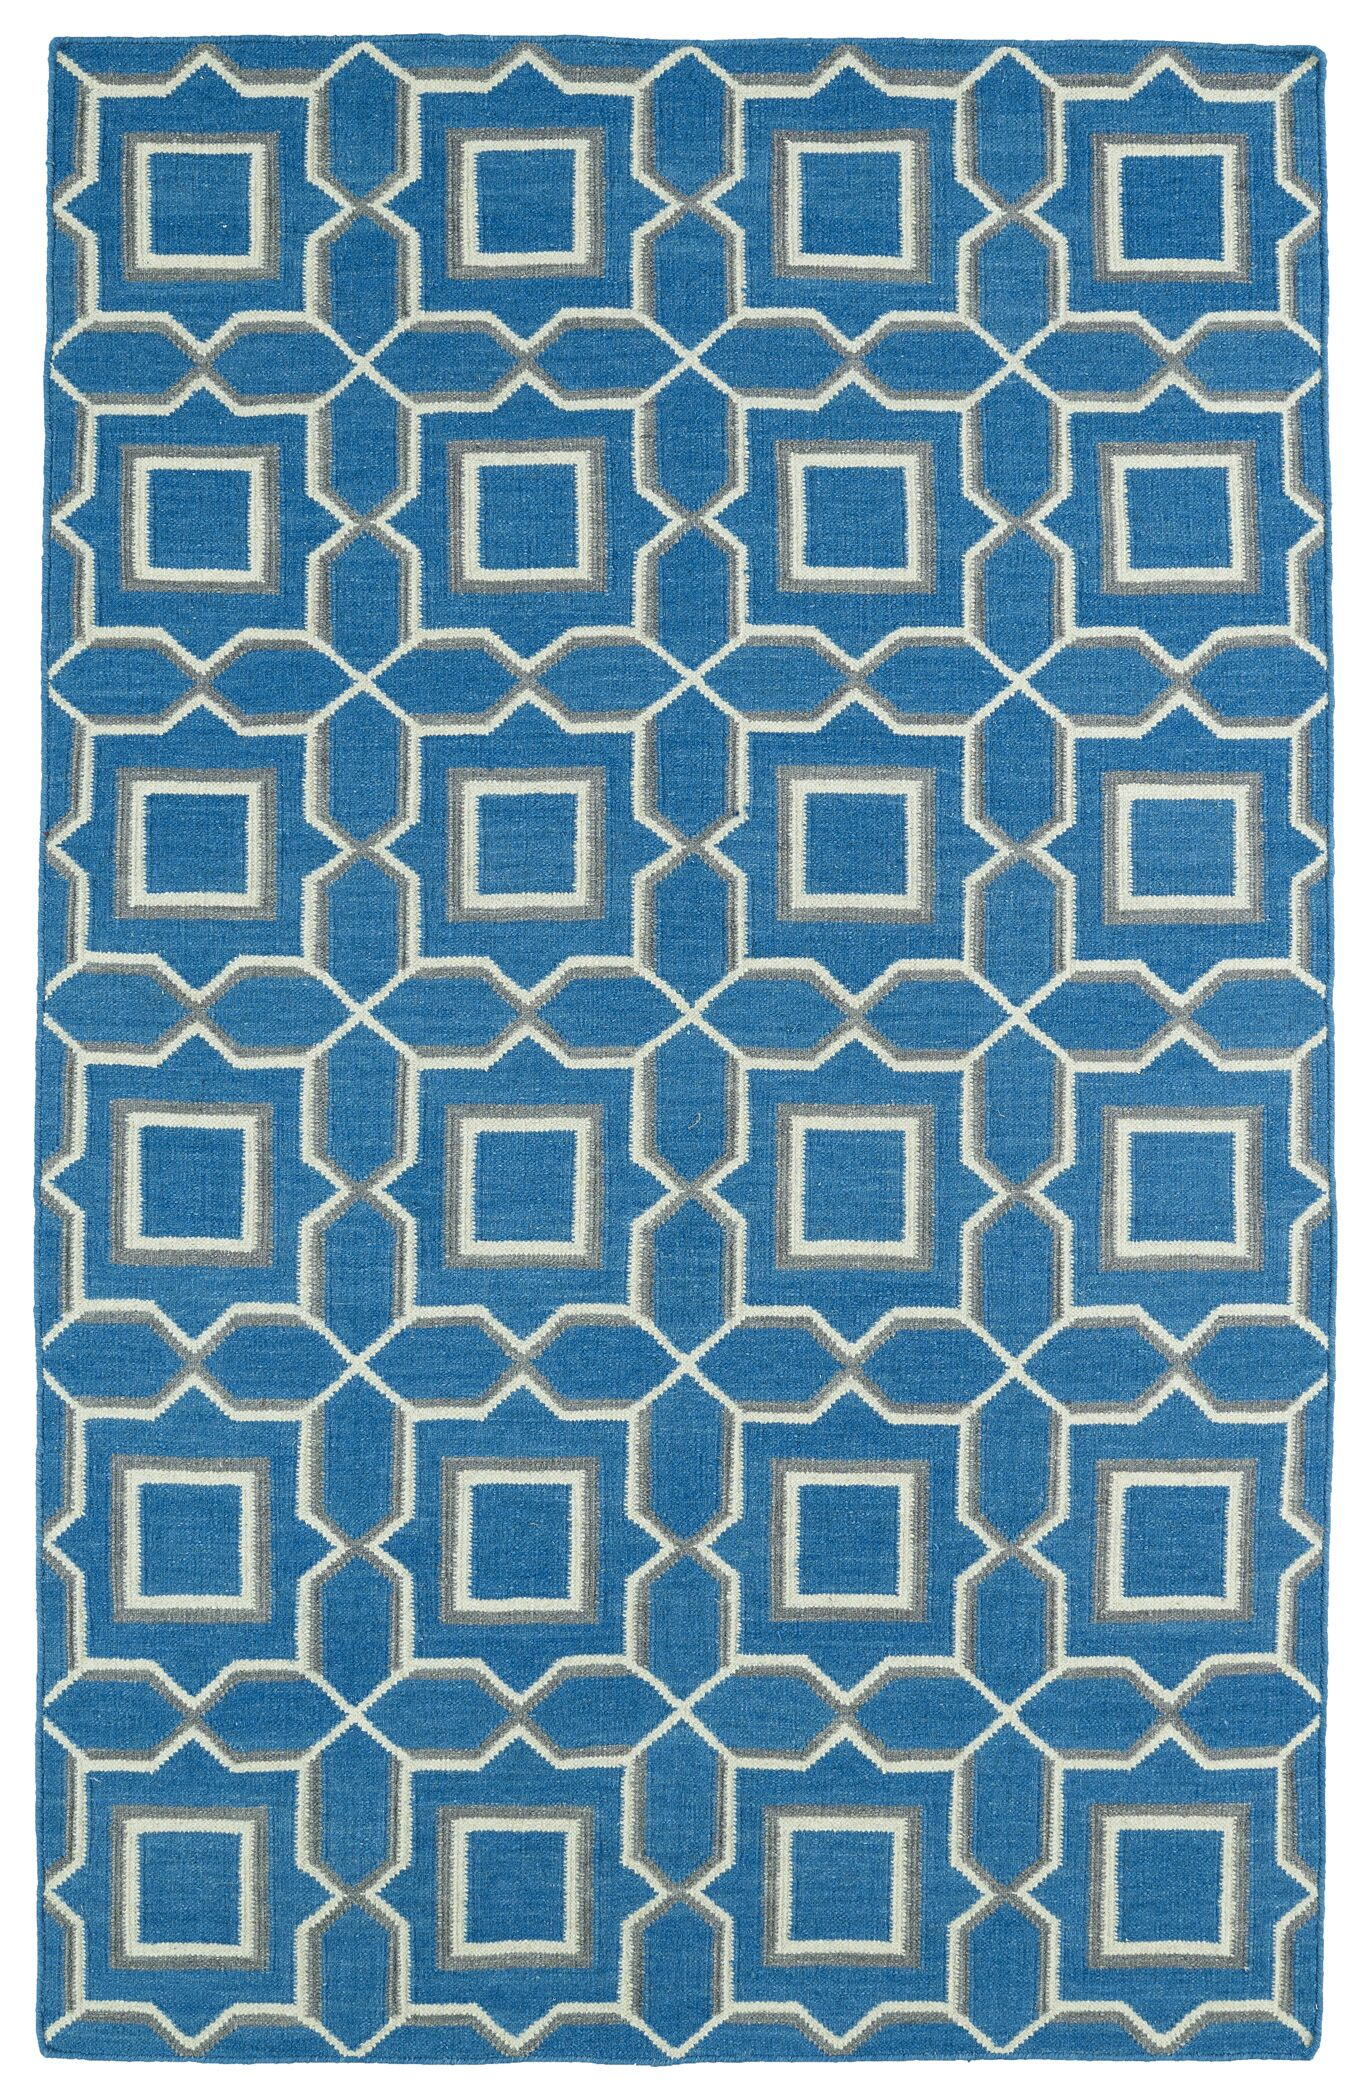 Christien Blue Geometric Area Rug Rug Size: Rectangle 9' x 12'